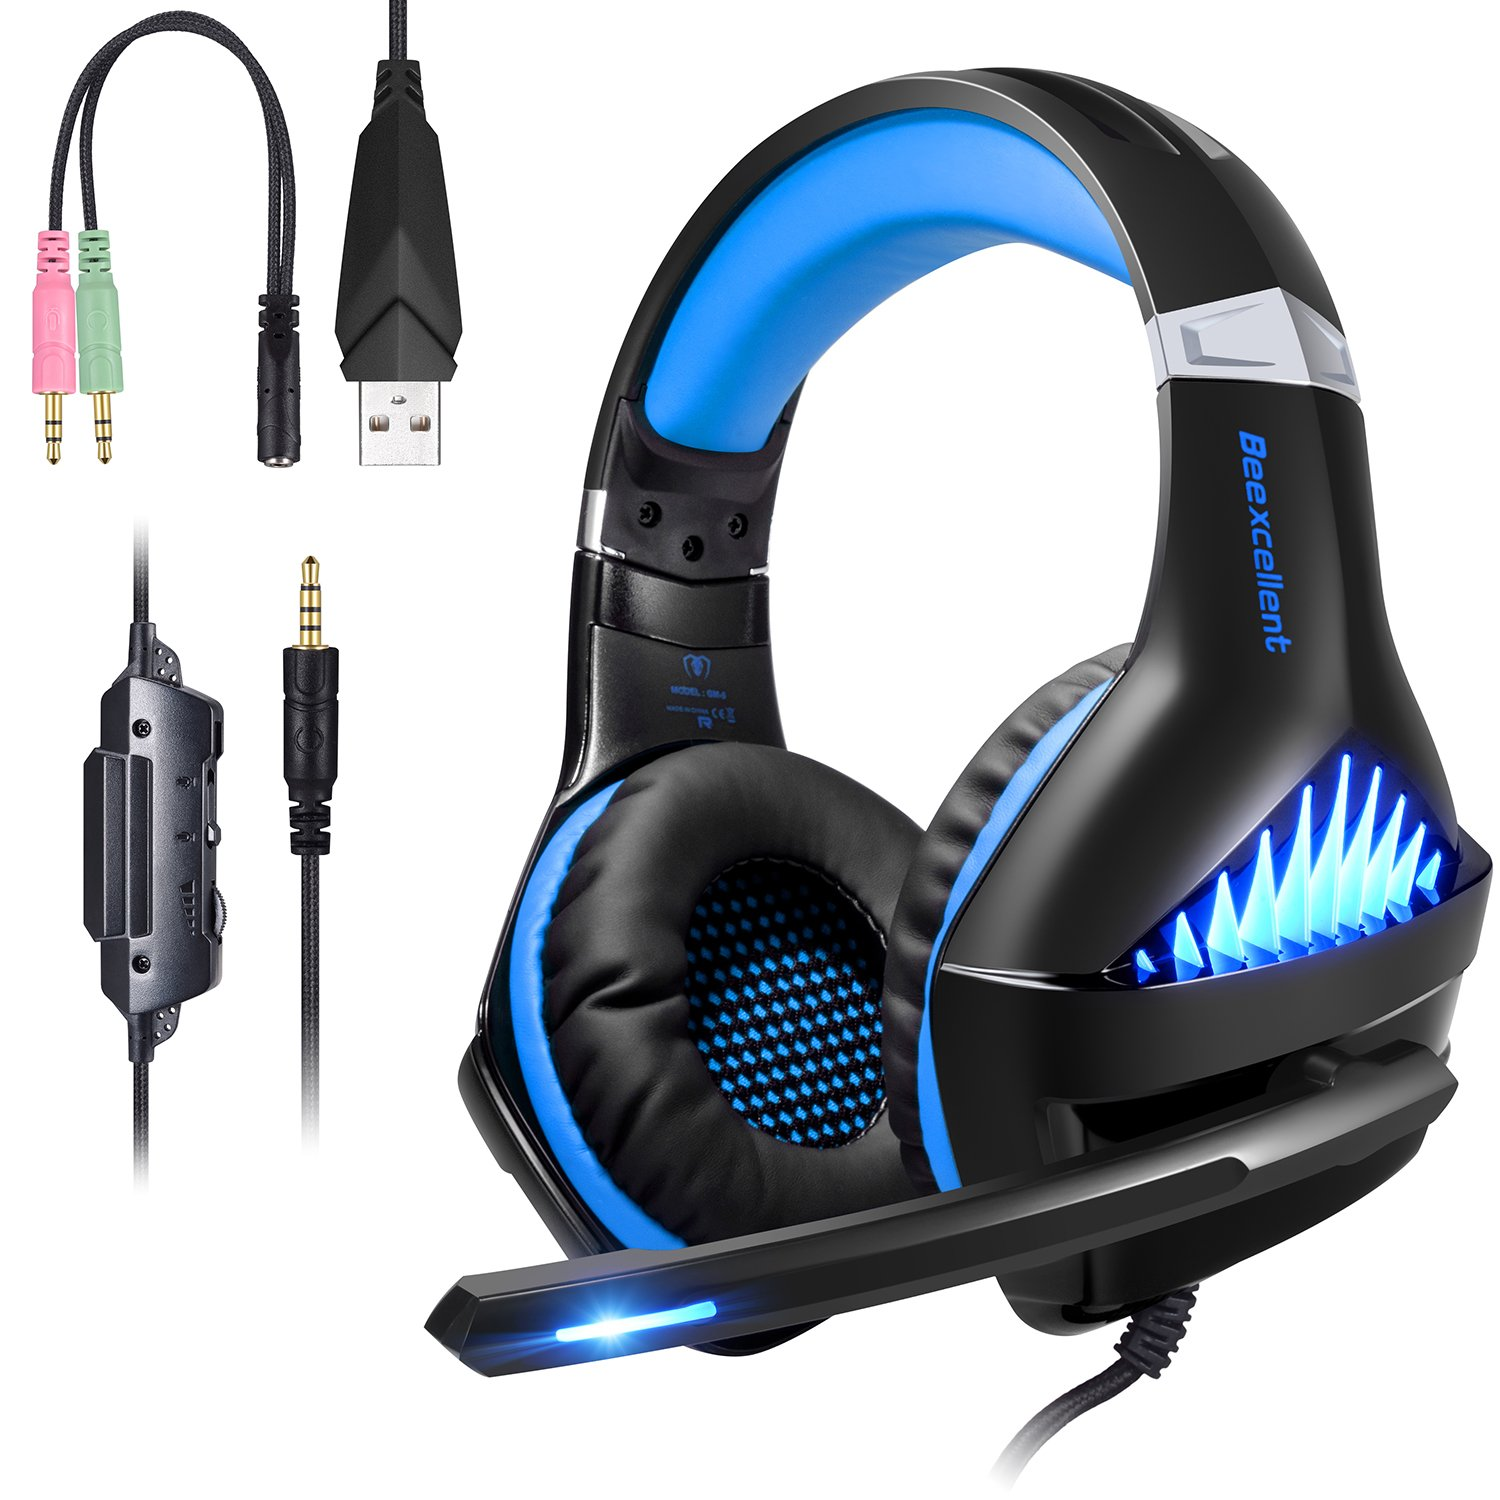 Casque Gaming PS4 PC Xbox One Switch, Samoleus Casque Gamer avec Micro Anti Bruit LED Lampe 3.5mm Audio Surround Stéréo Basse Contrôle du Volume Microphone Réglable, Compatible pour Xbox One, PS4, PC, Laptop, Tablette, Mac, iPad, Smartphone, Playstation 4